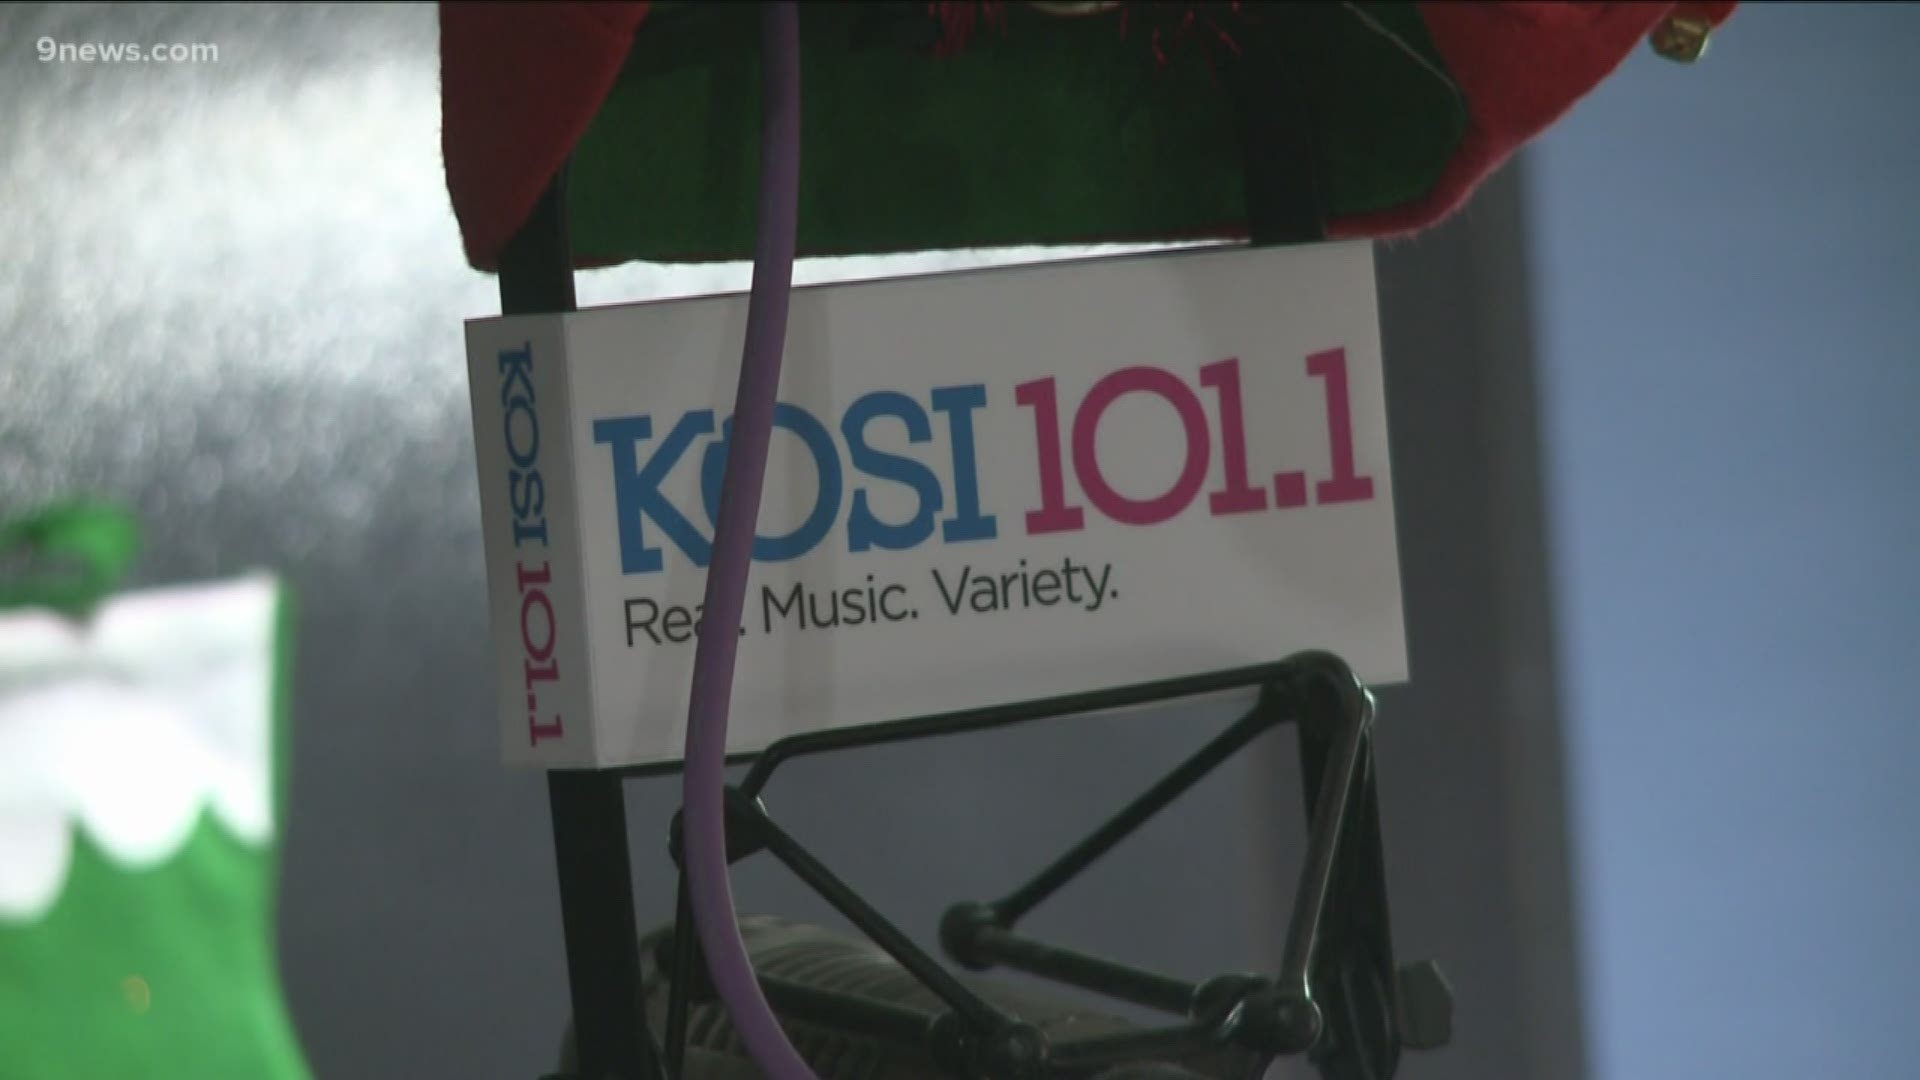 Denver Christmas Music Radio 2020 When will KOSI 101.1 switch to Christmas music? | 9news.com